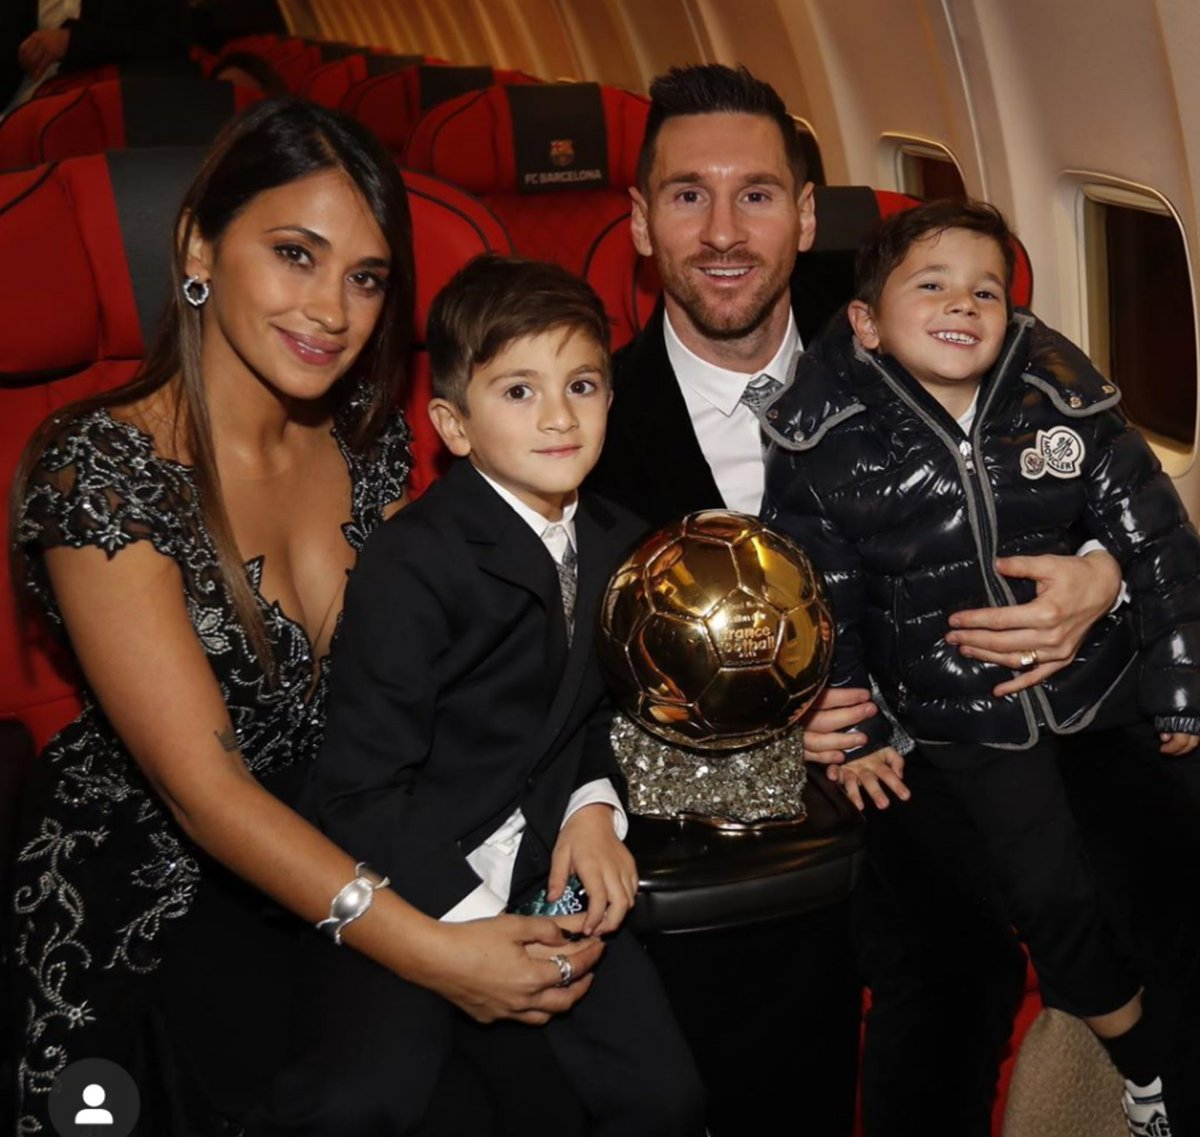 #Messi  was placed 5th in last year's Ballon d'or, but we didn't see Antonella or his sisters say Ronaldo is an ogboni member or cry like bush babies. I Stan a Mentally Healthy family